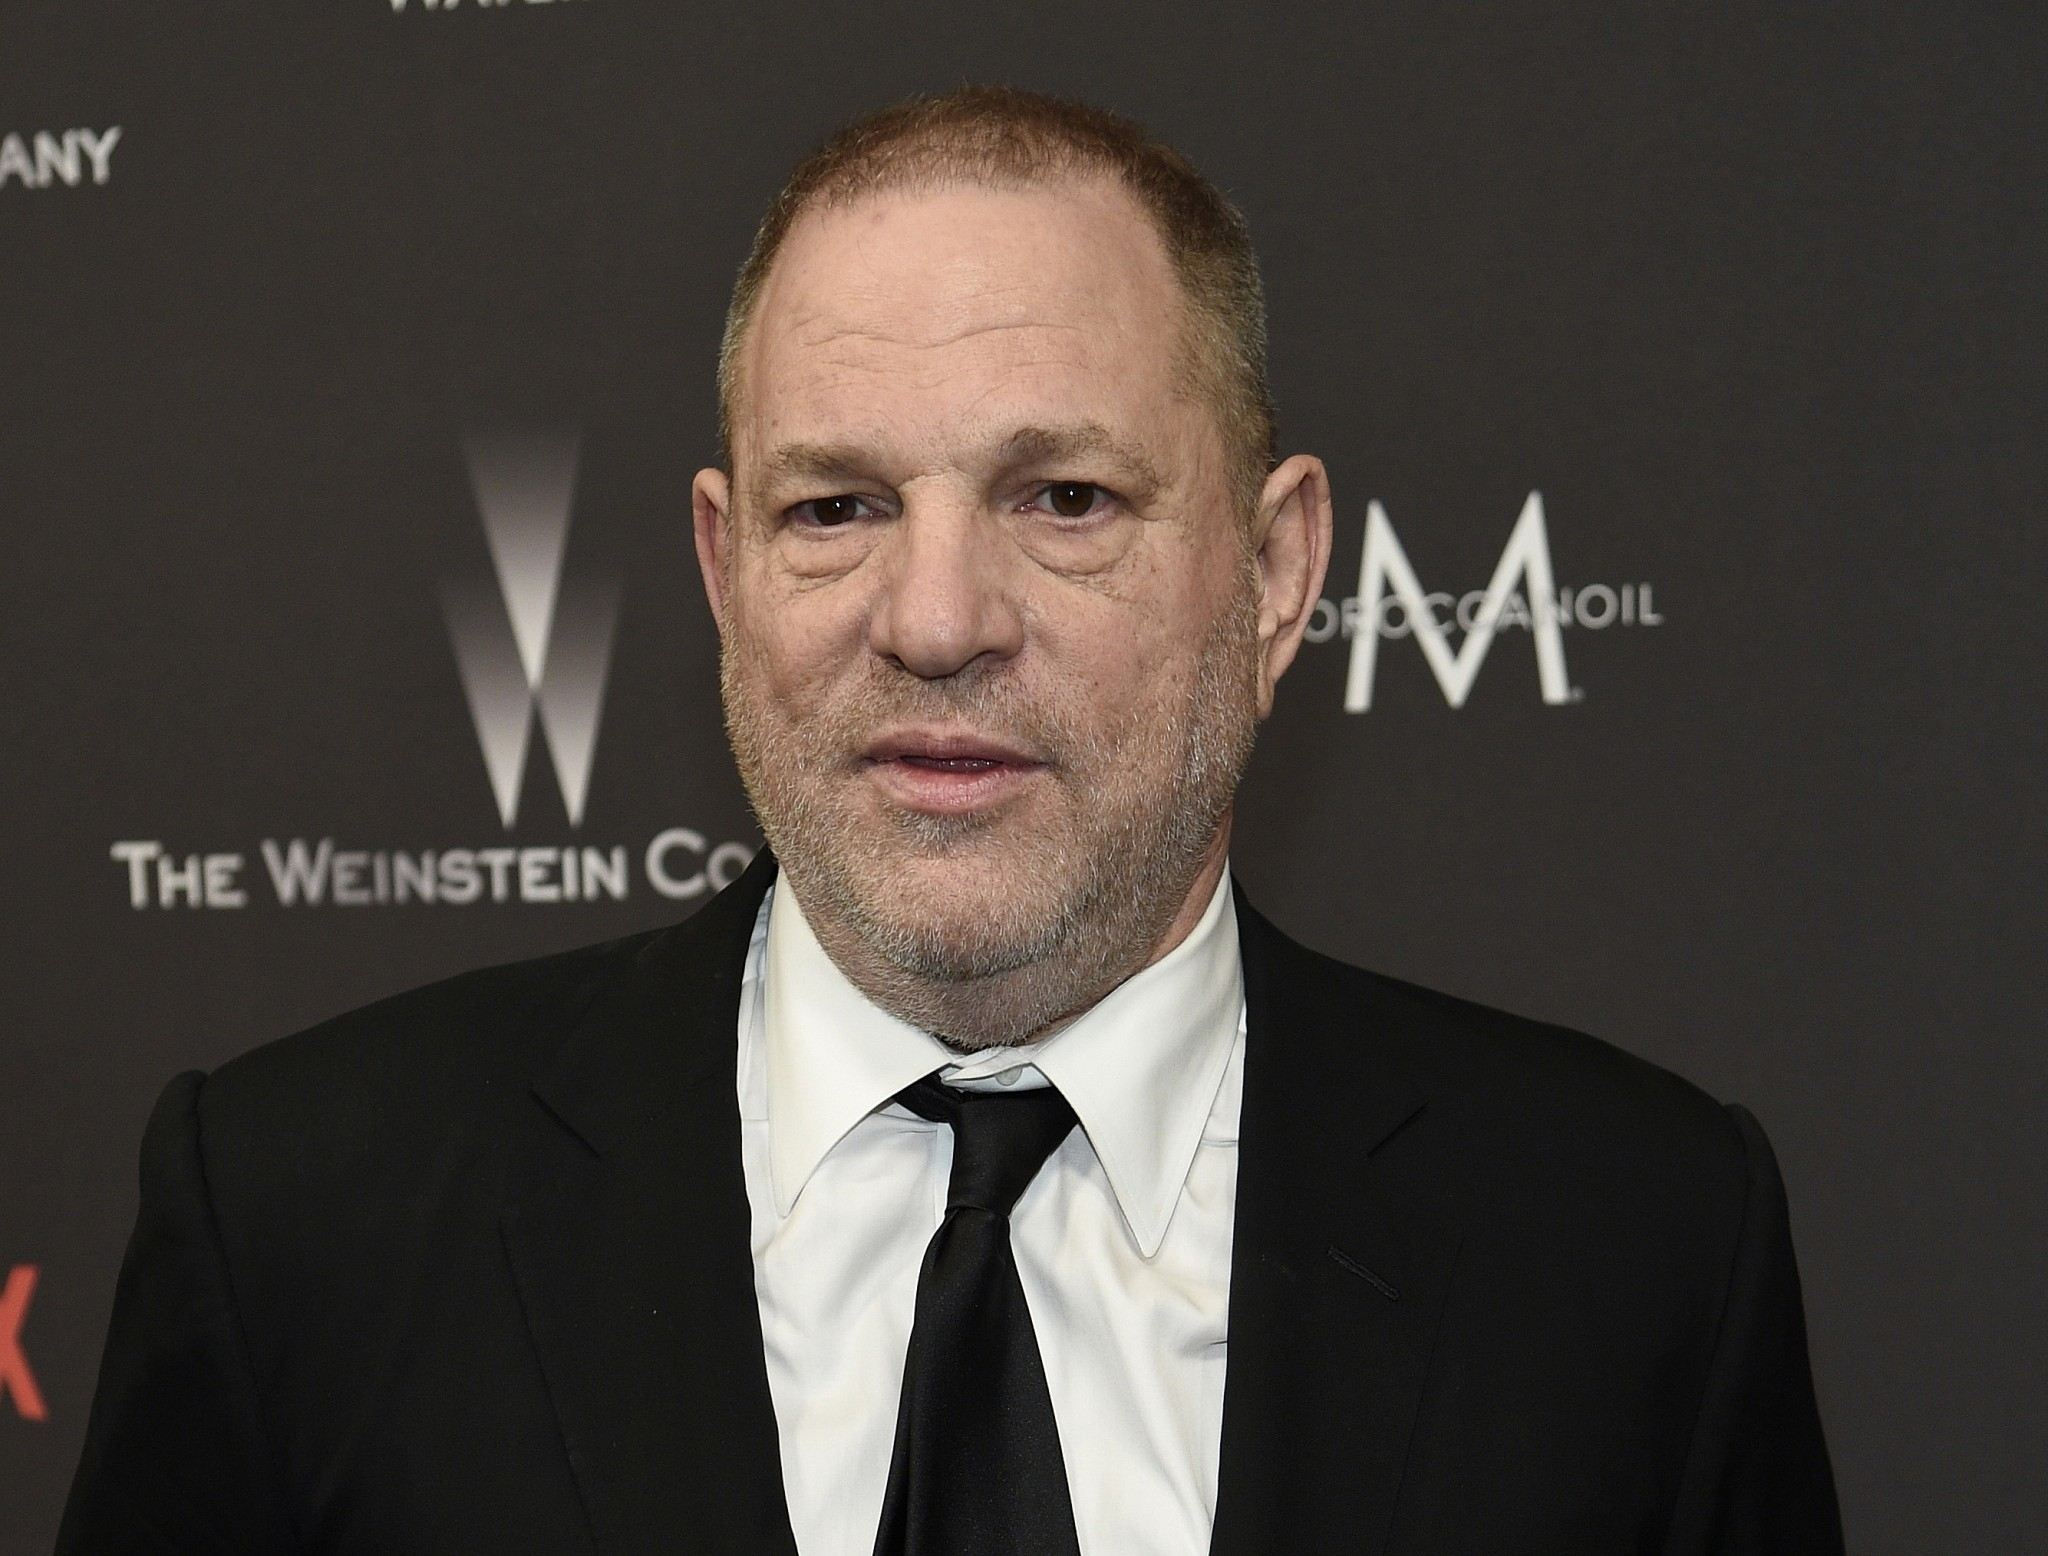 NY attorney general sues The Weinstein Company, Harvey Weinstein